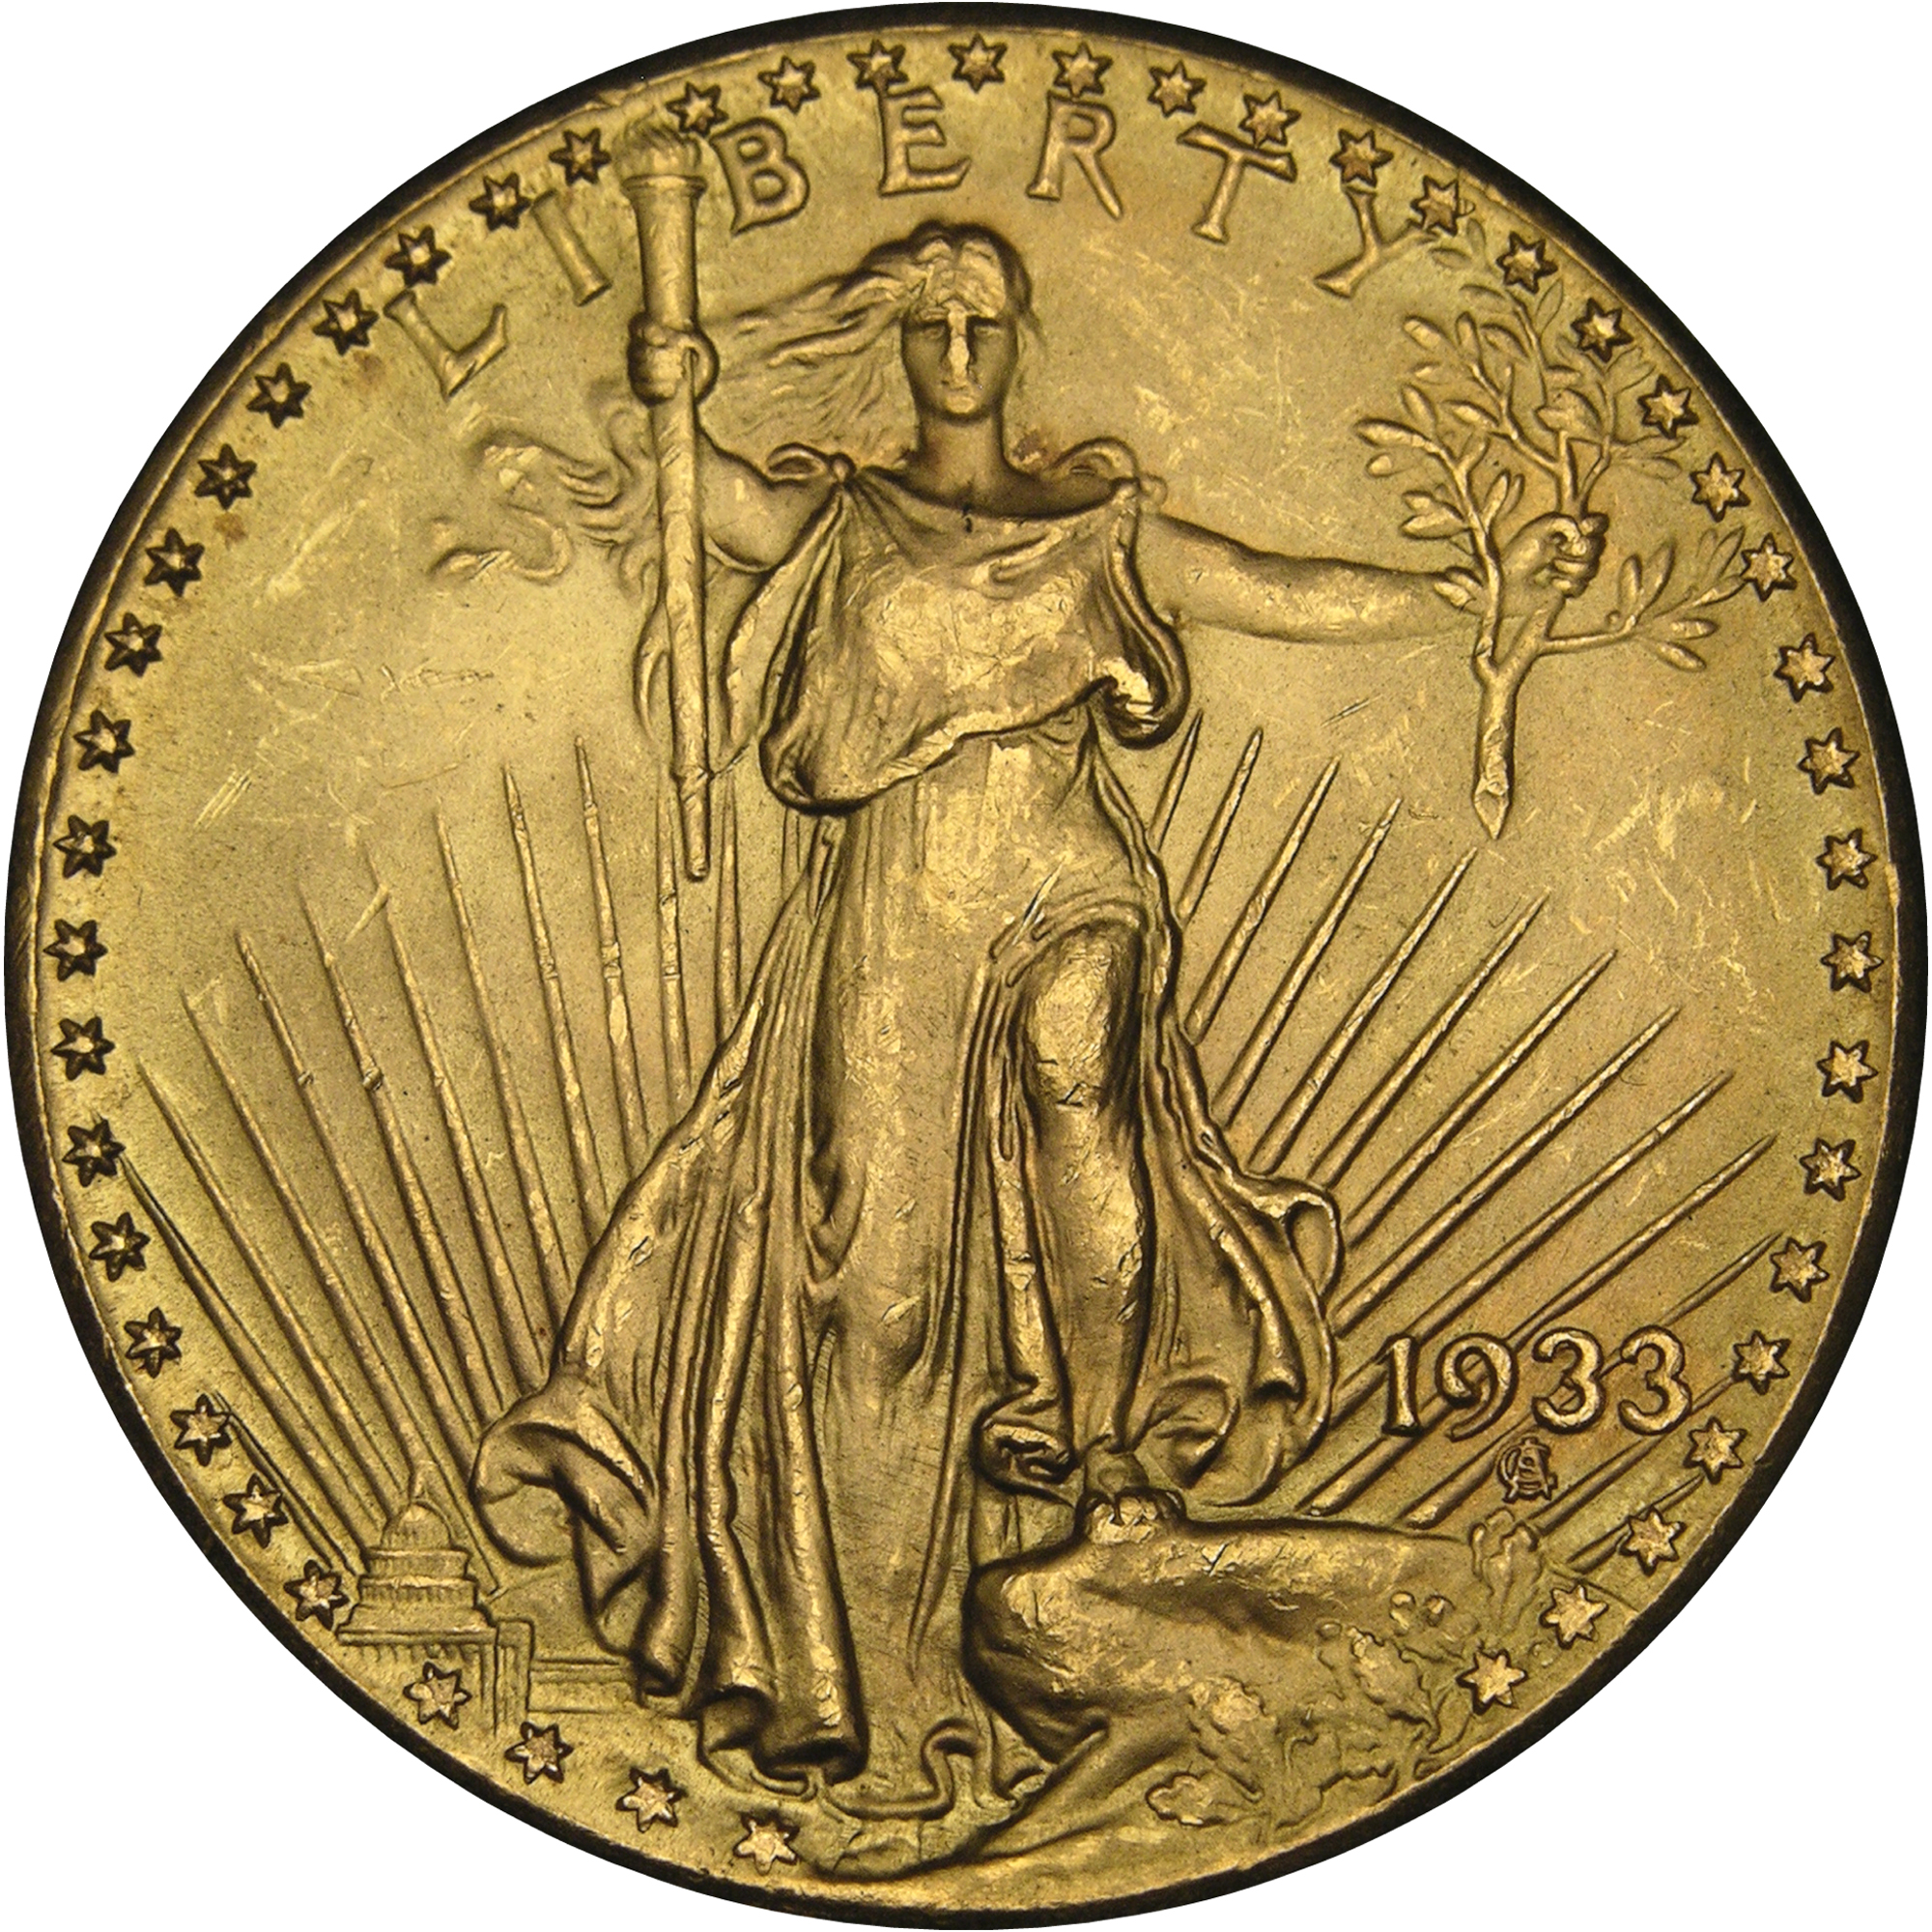 What Is Pre-1933 U.S. Gold?